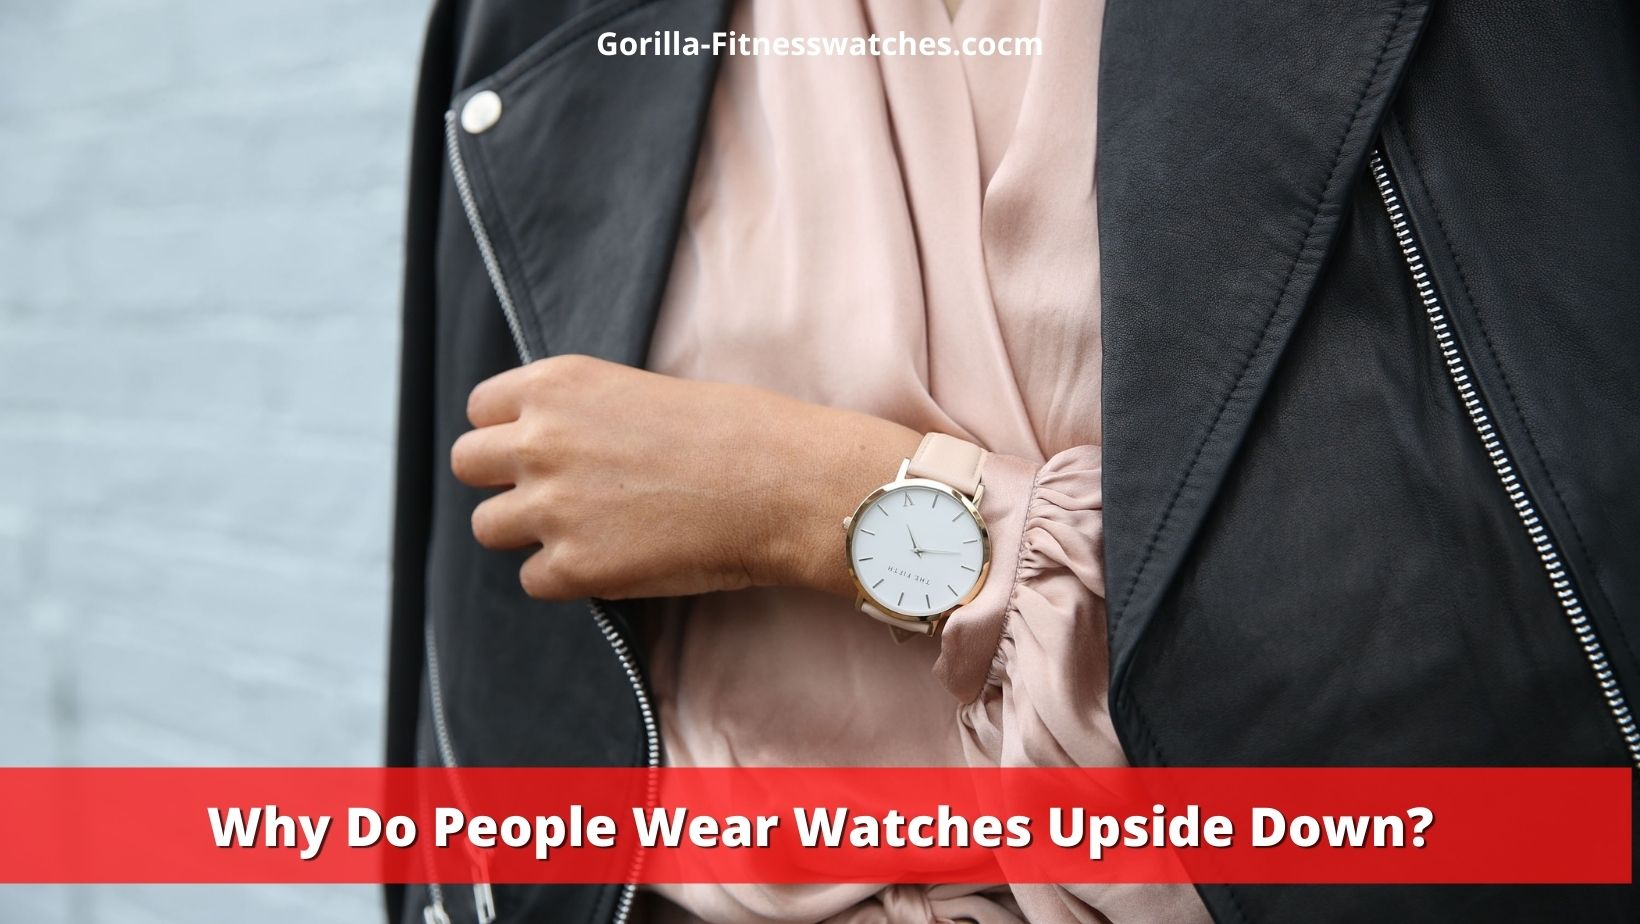 Why Do People Wear Watches Upside Down?